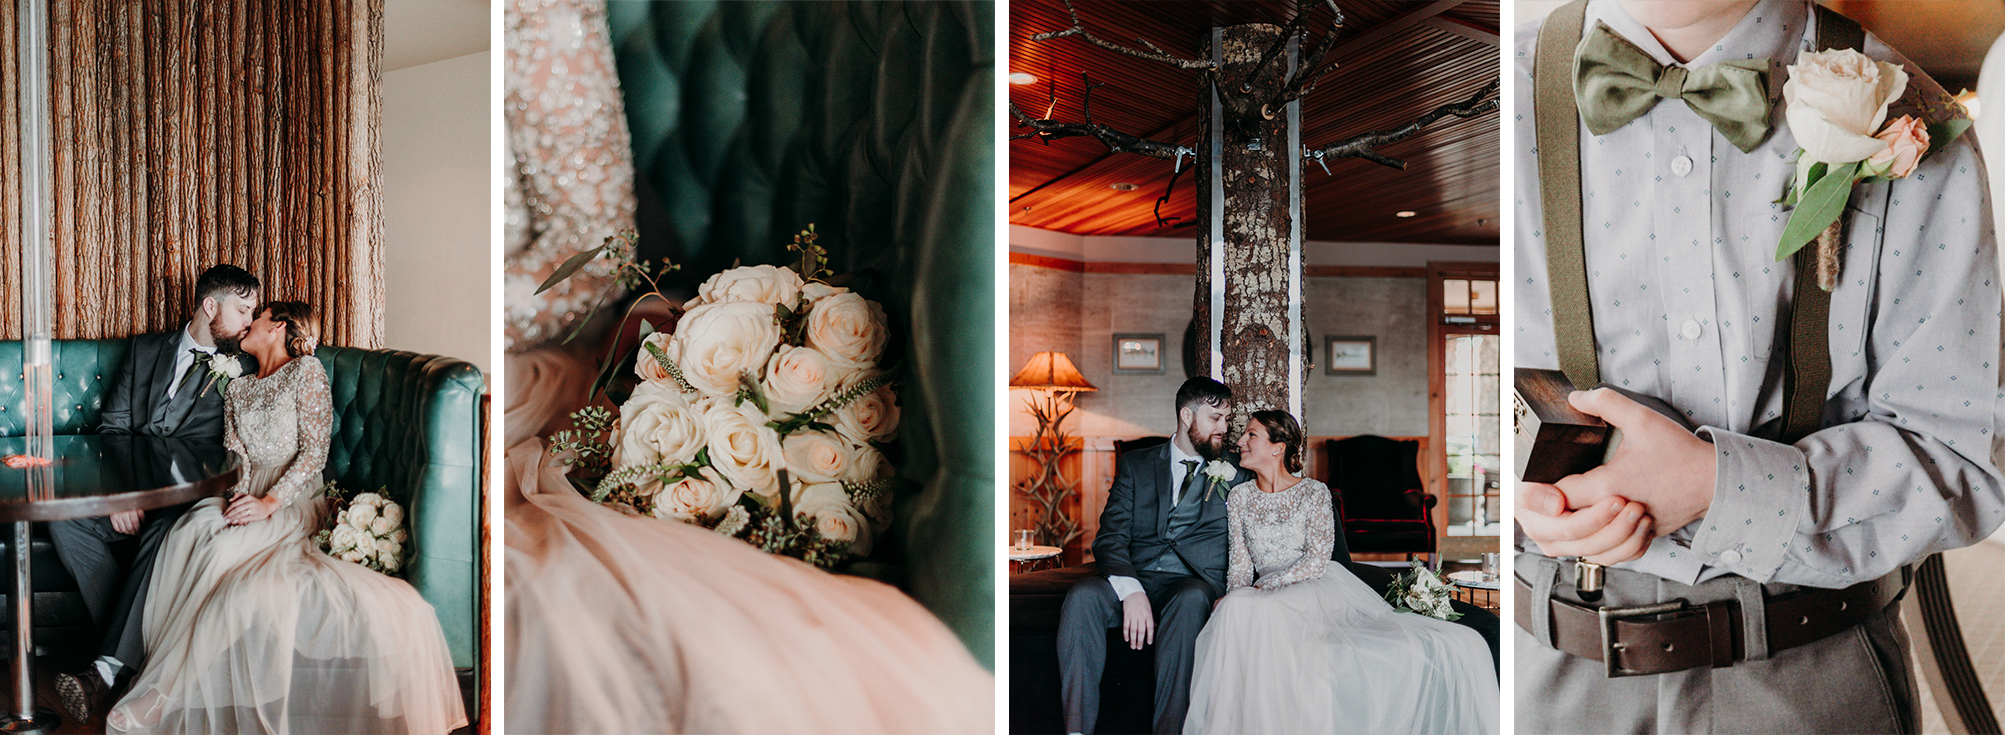 Brooke Summers Photography | Wedding Gallery